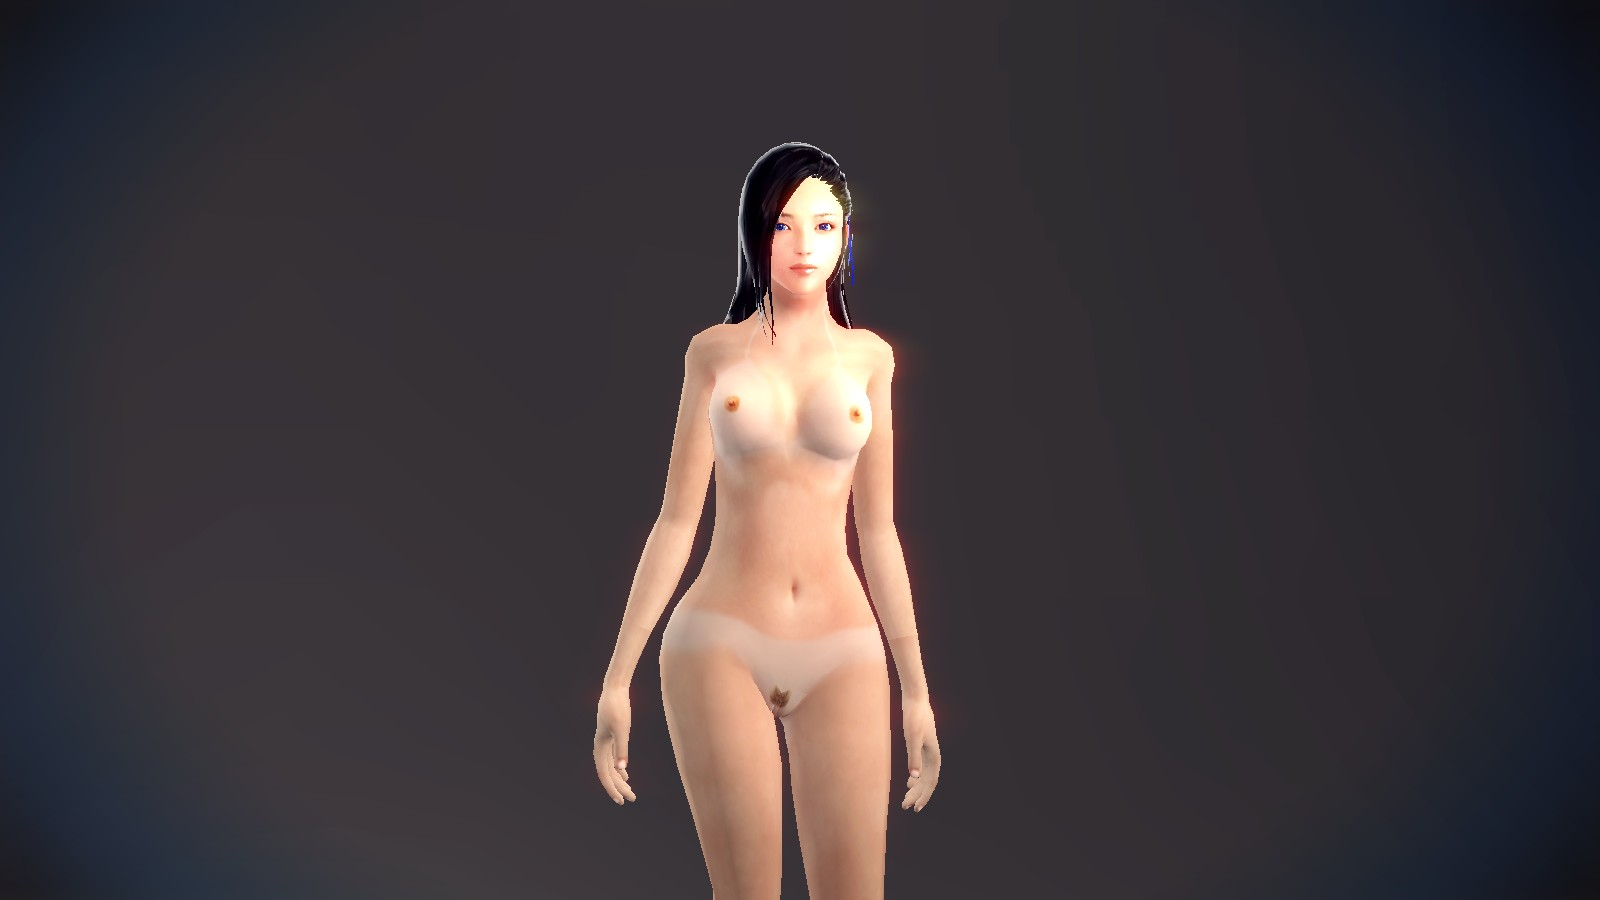 Vindictus female nude mod sex girlfriends